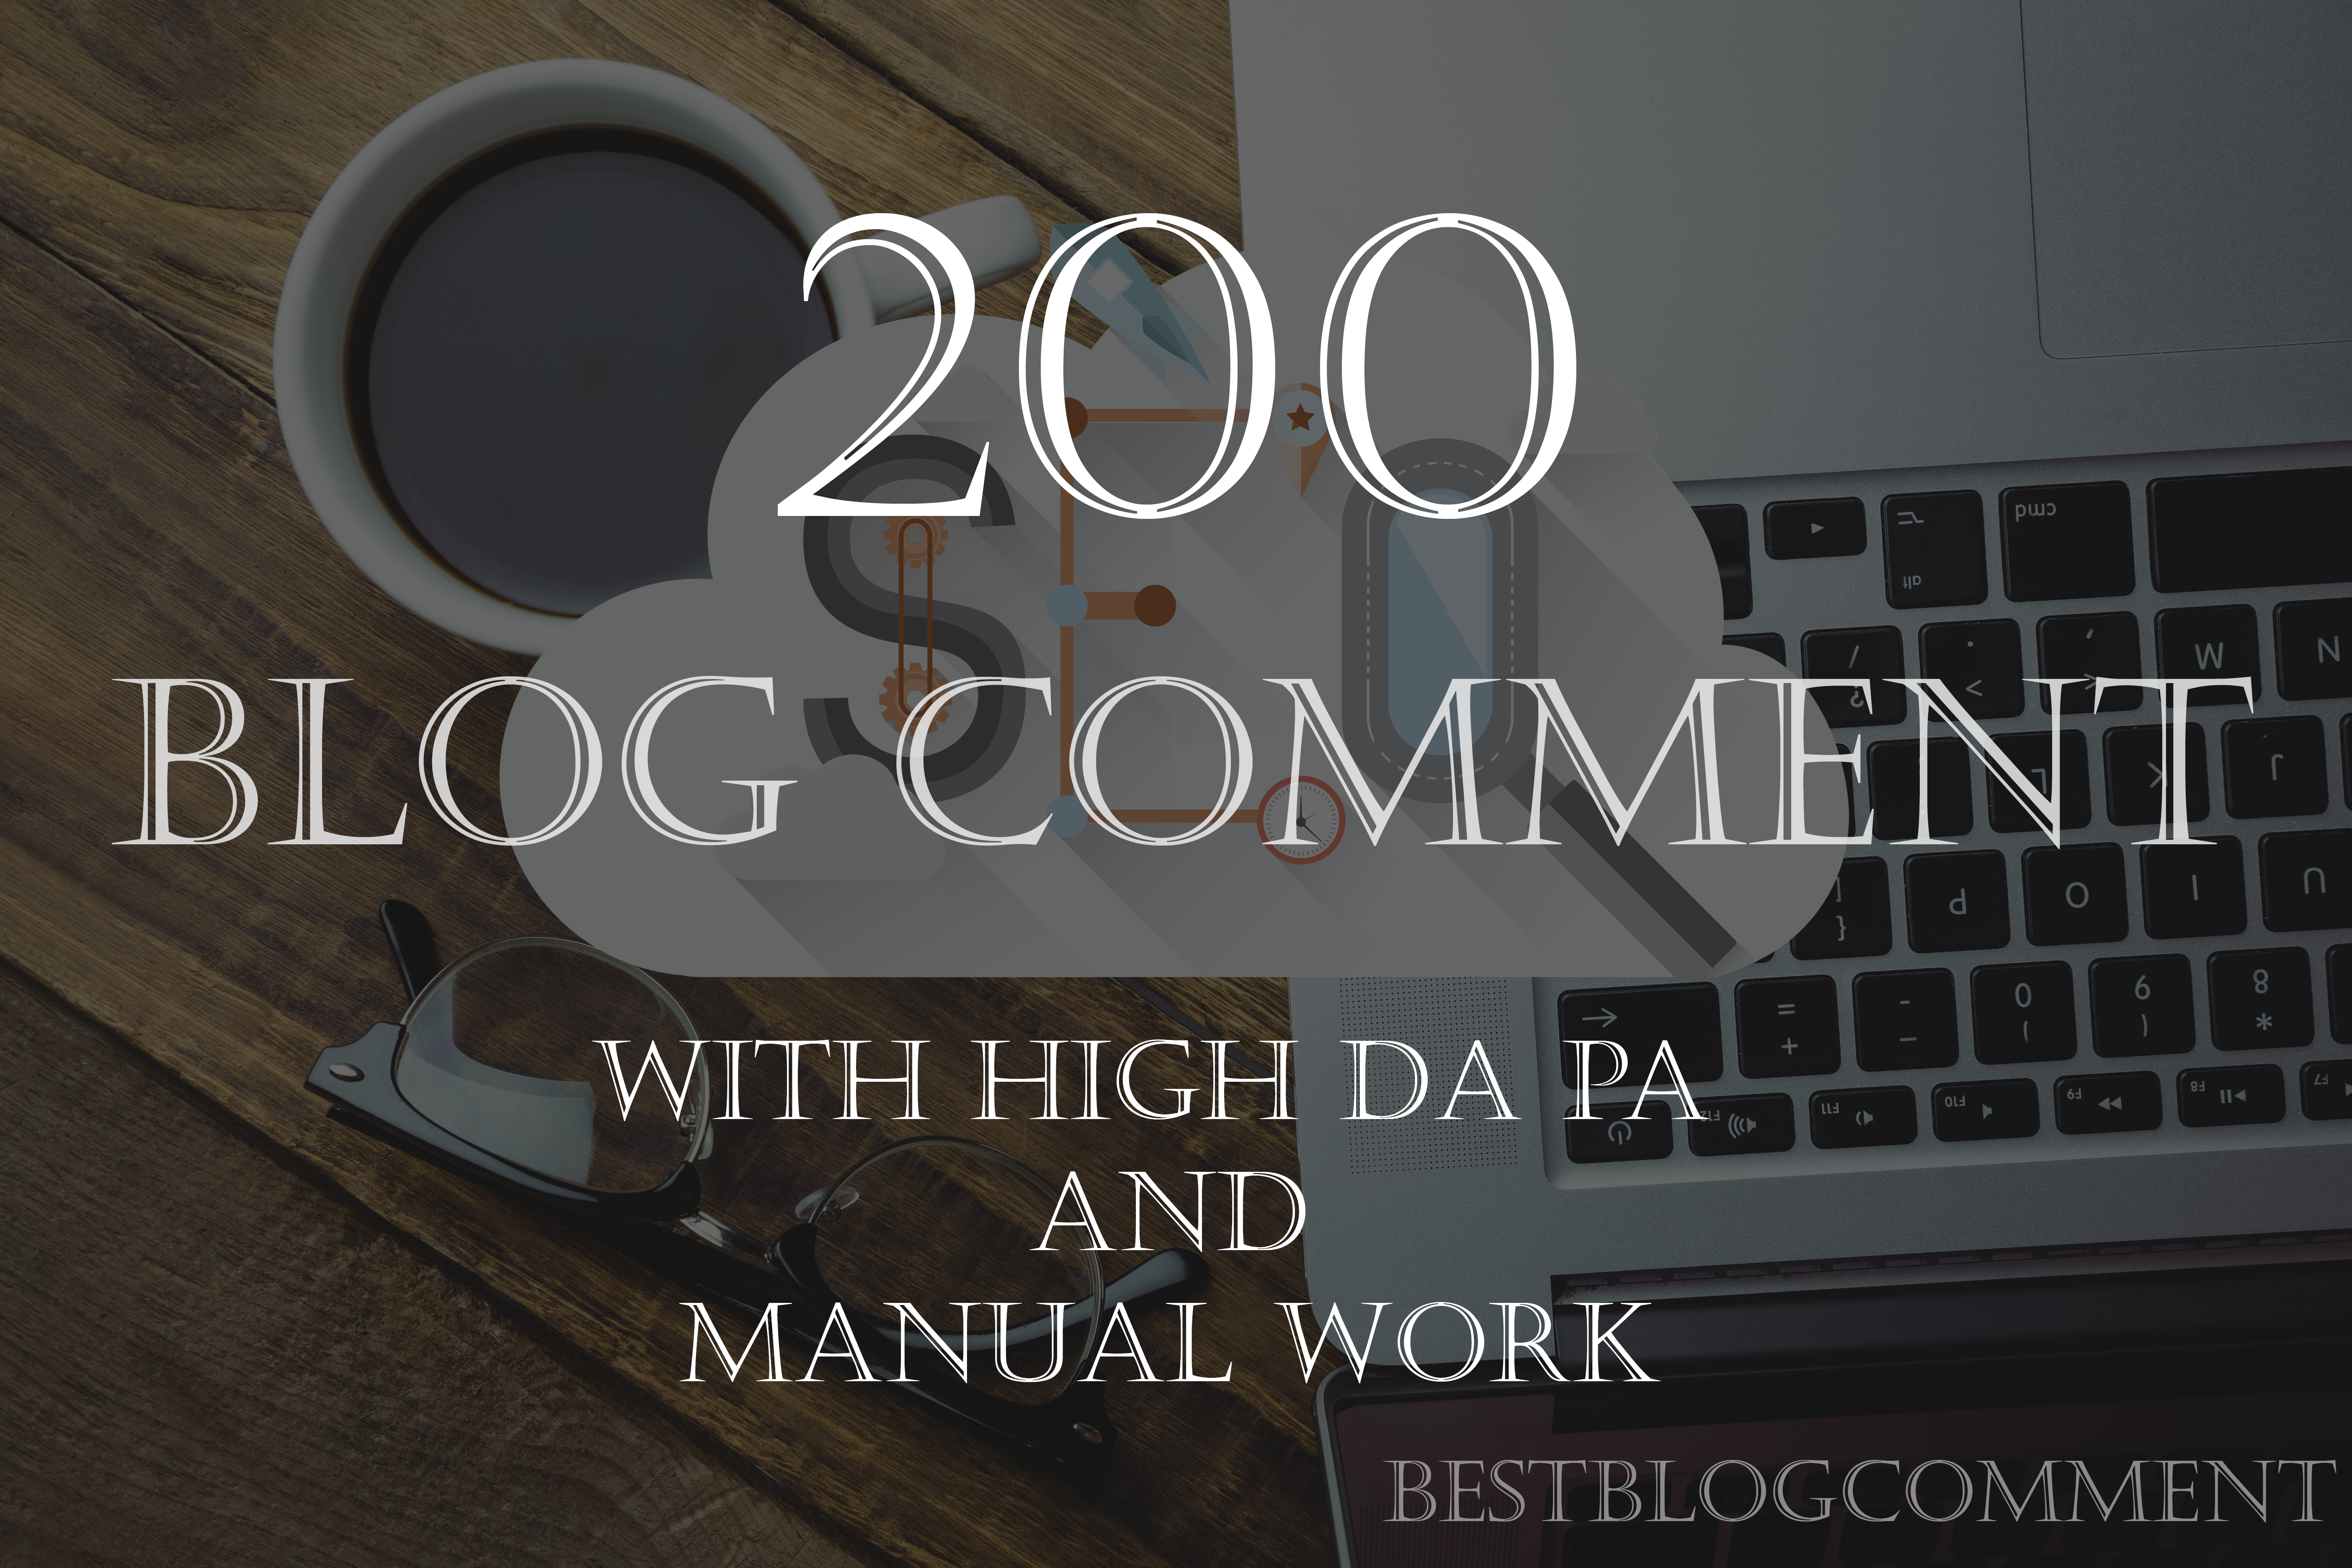 create 200 manual blog comment backlink with high da pa